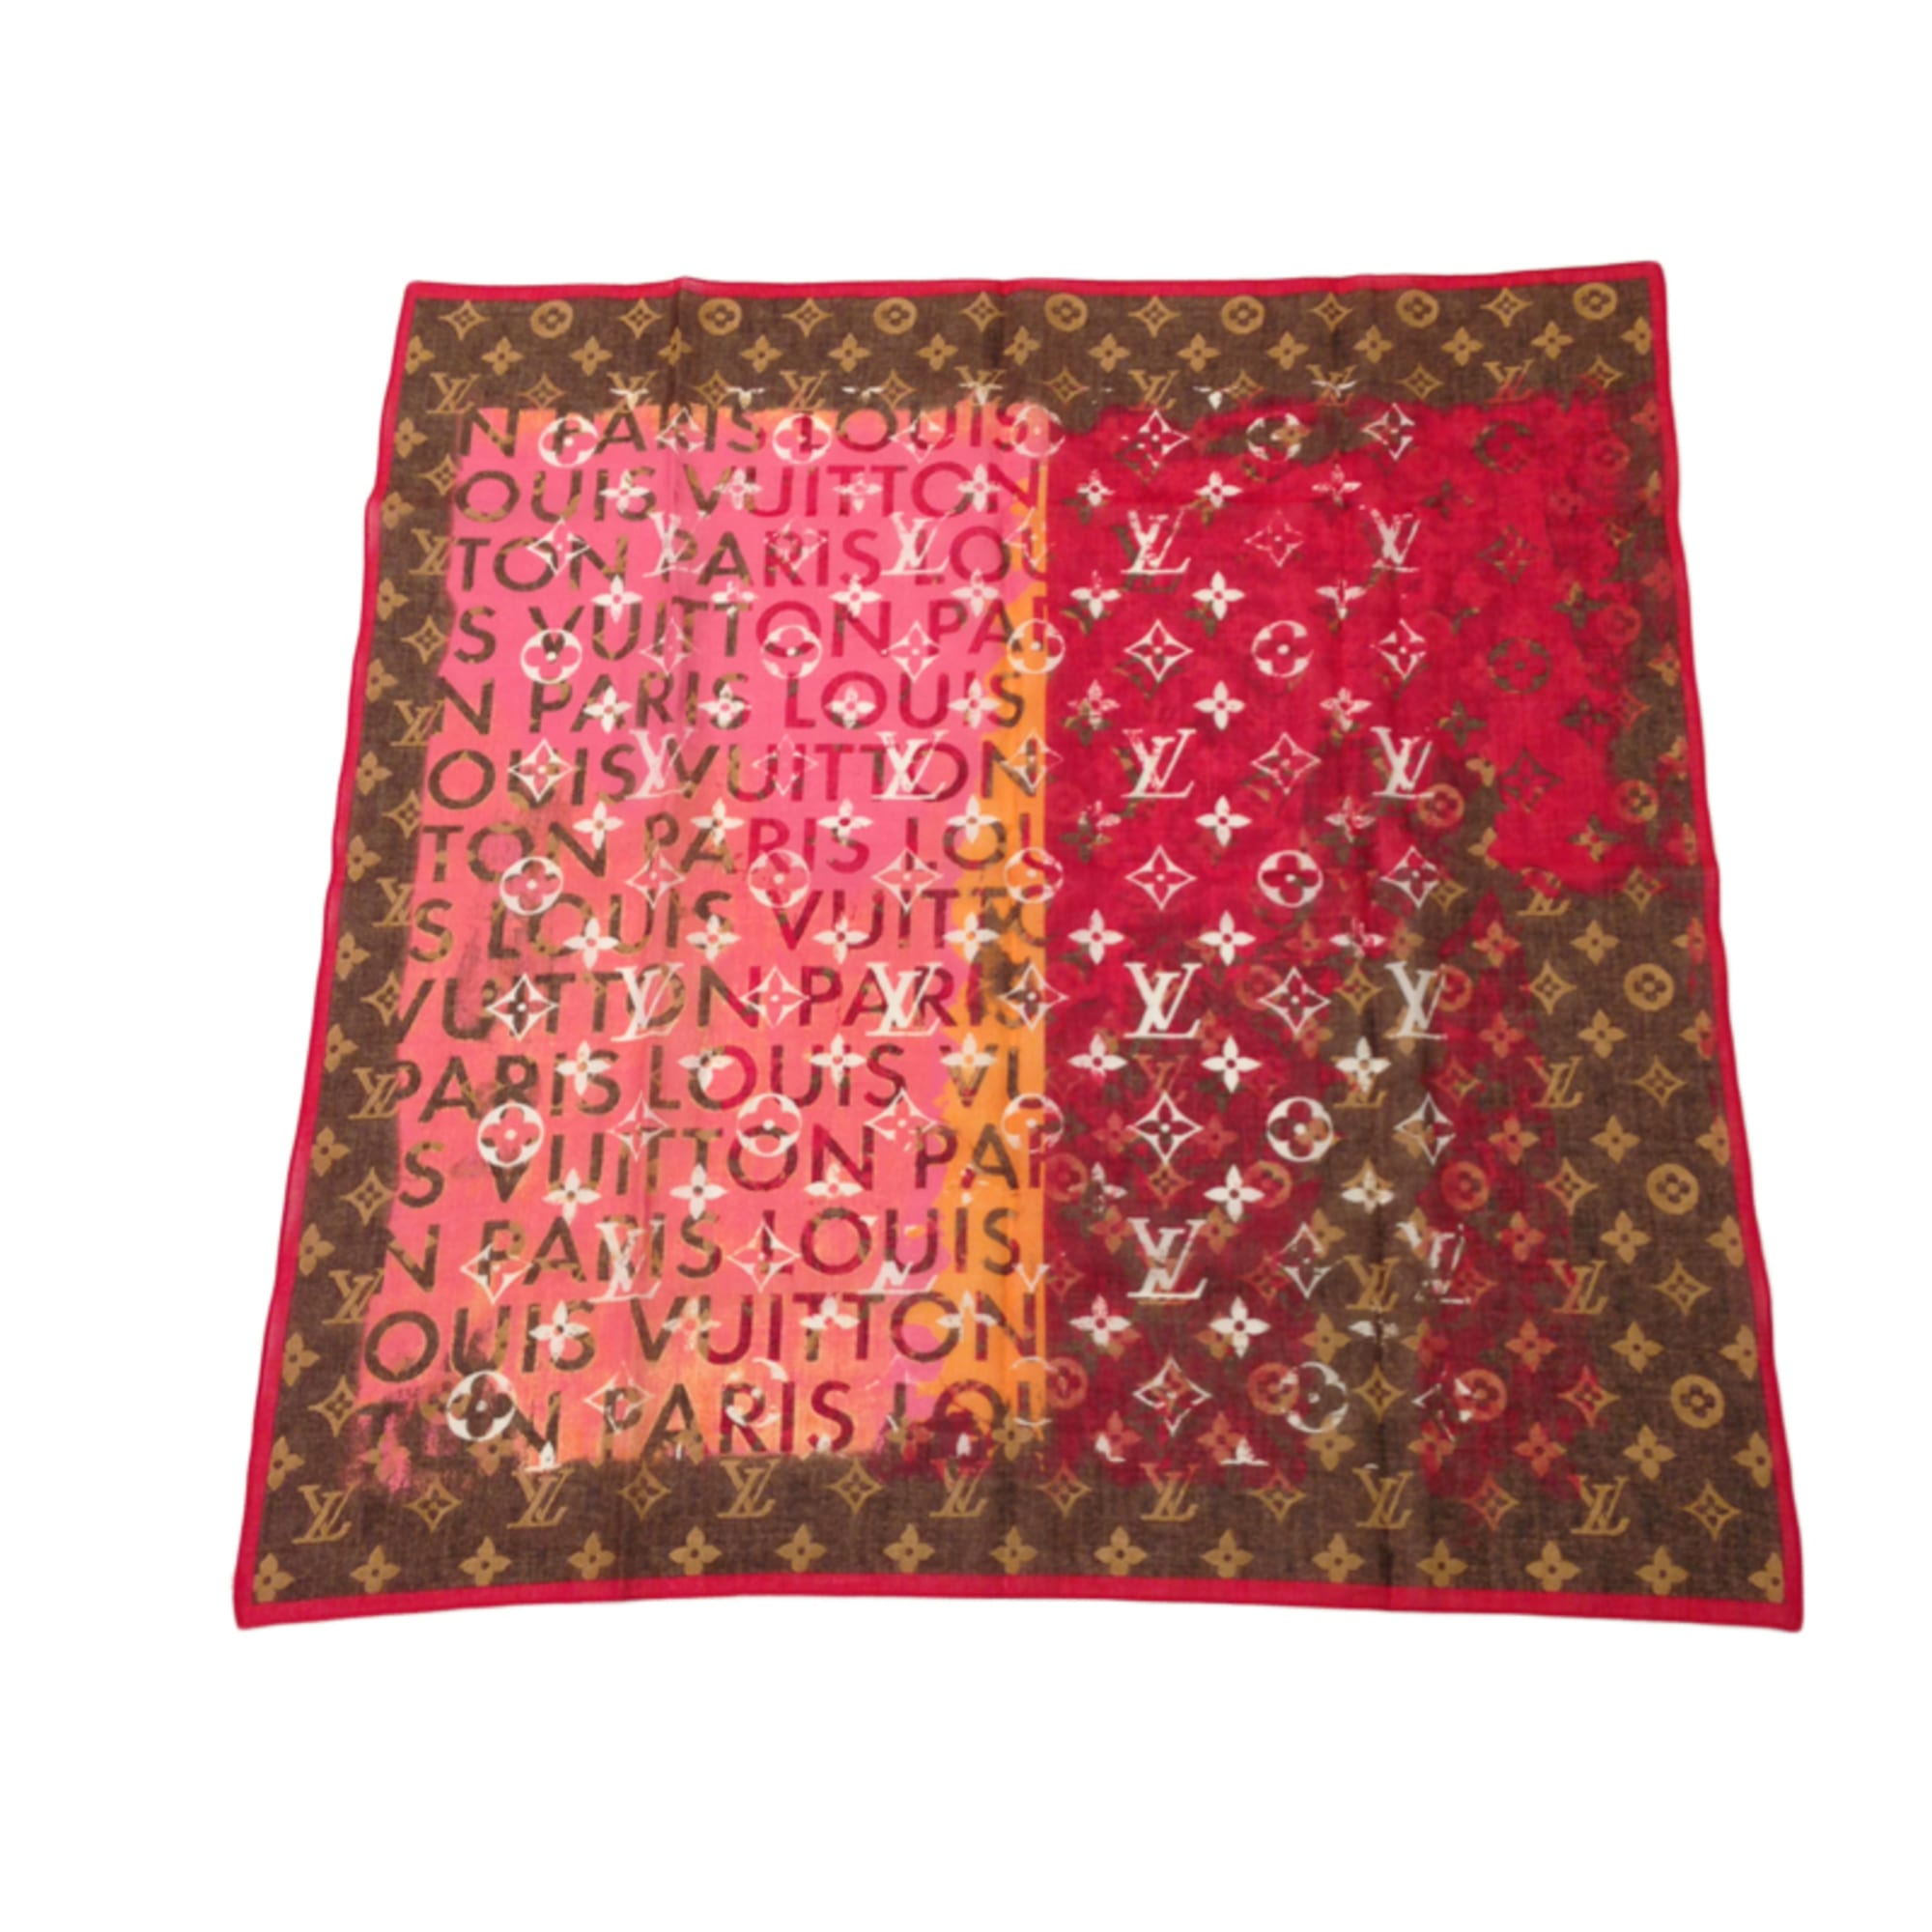 Foulard LOUIS VUITTON marron vendu par Chocolat blond - 4341069 098bbc9e849